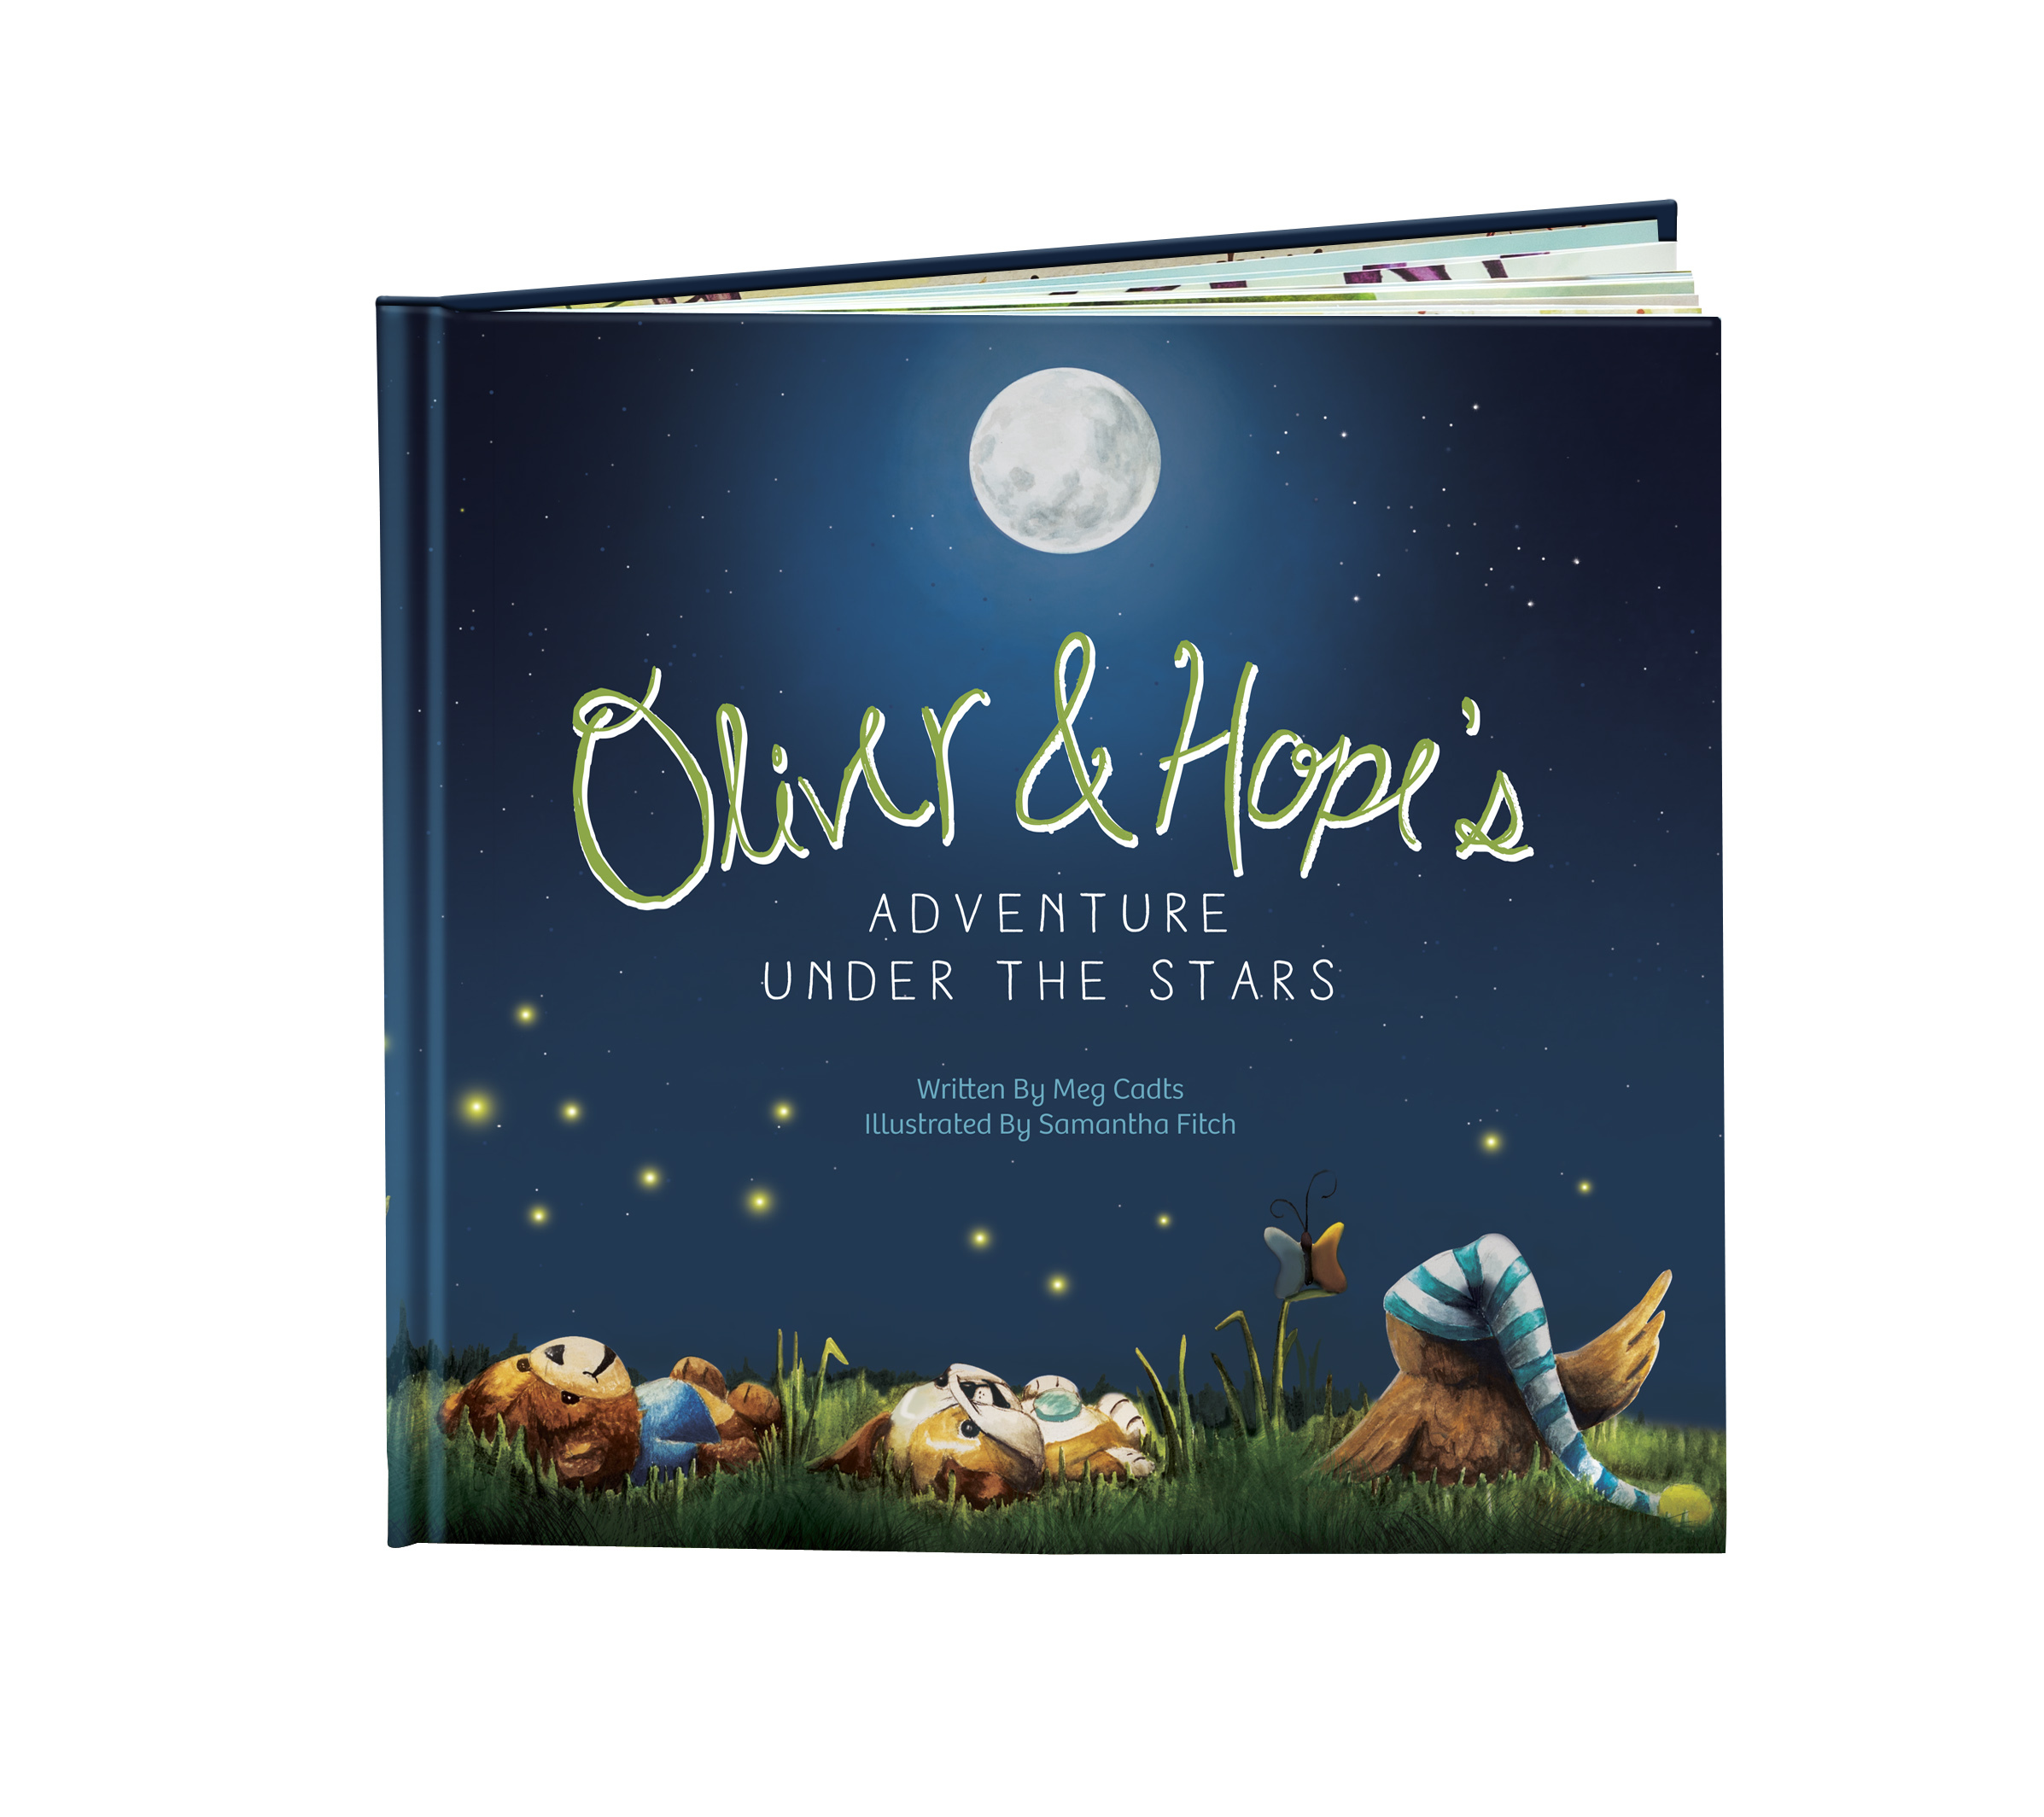 """To help raise funds for its child medical grant program, UnitedHealthcare Children's Foundation has published a new children's book, """"Oliver & Hope's Adventure Under the Stars"""" - the second book in the Oliver & Hope series (Photo: UnitedHealthcare Children's Foundation)."""